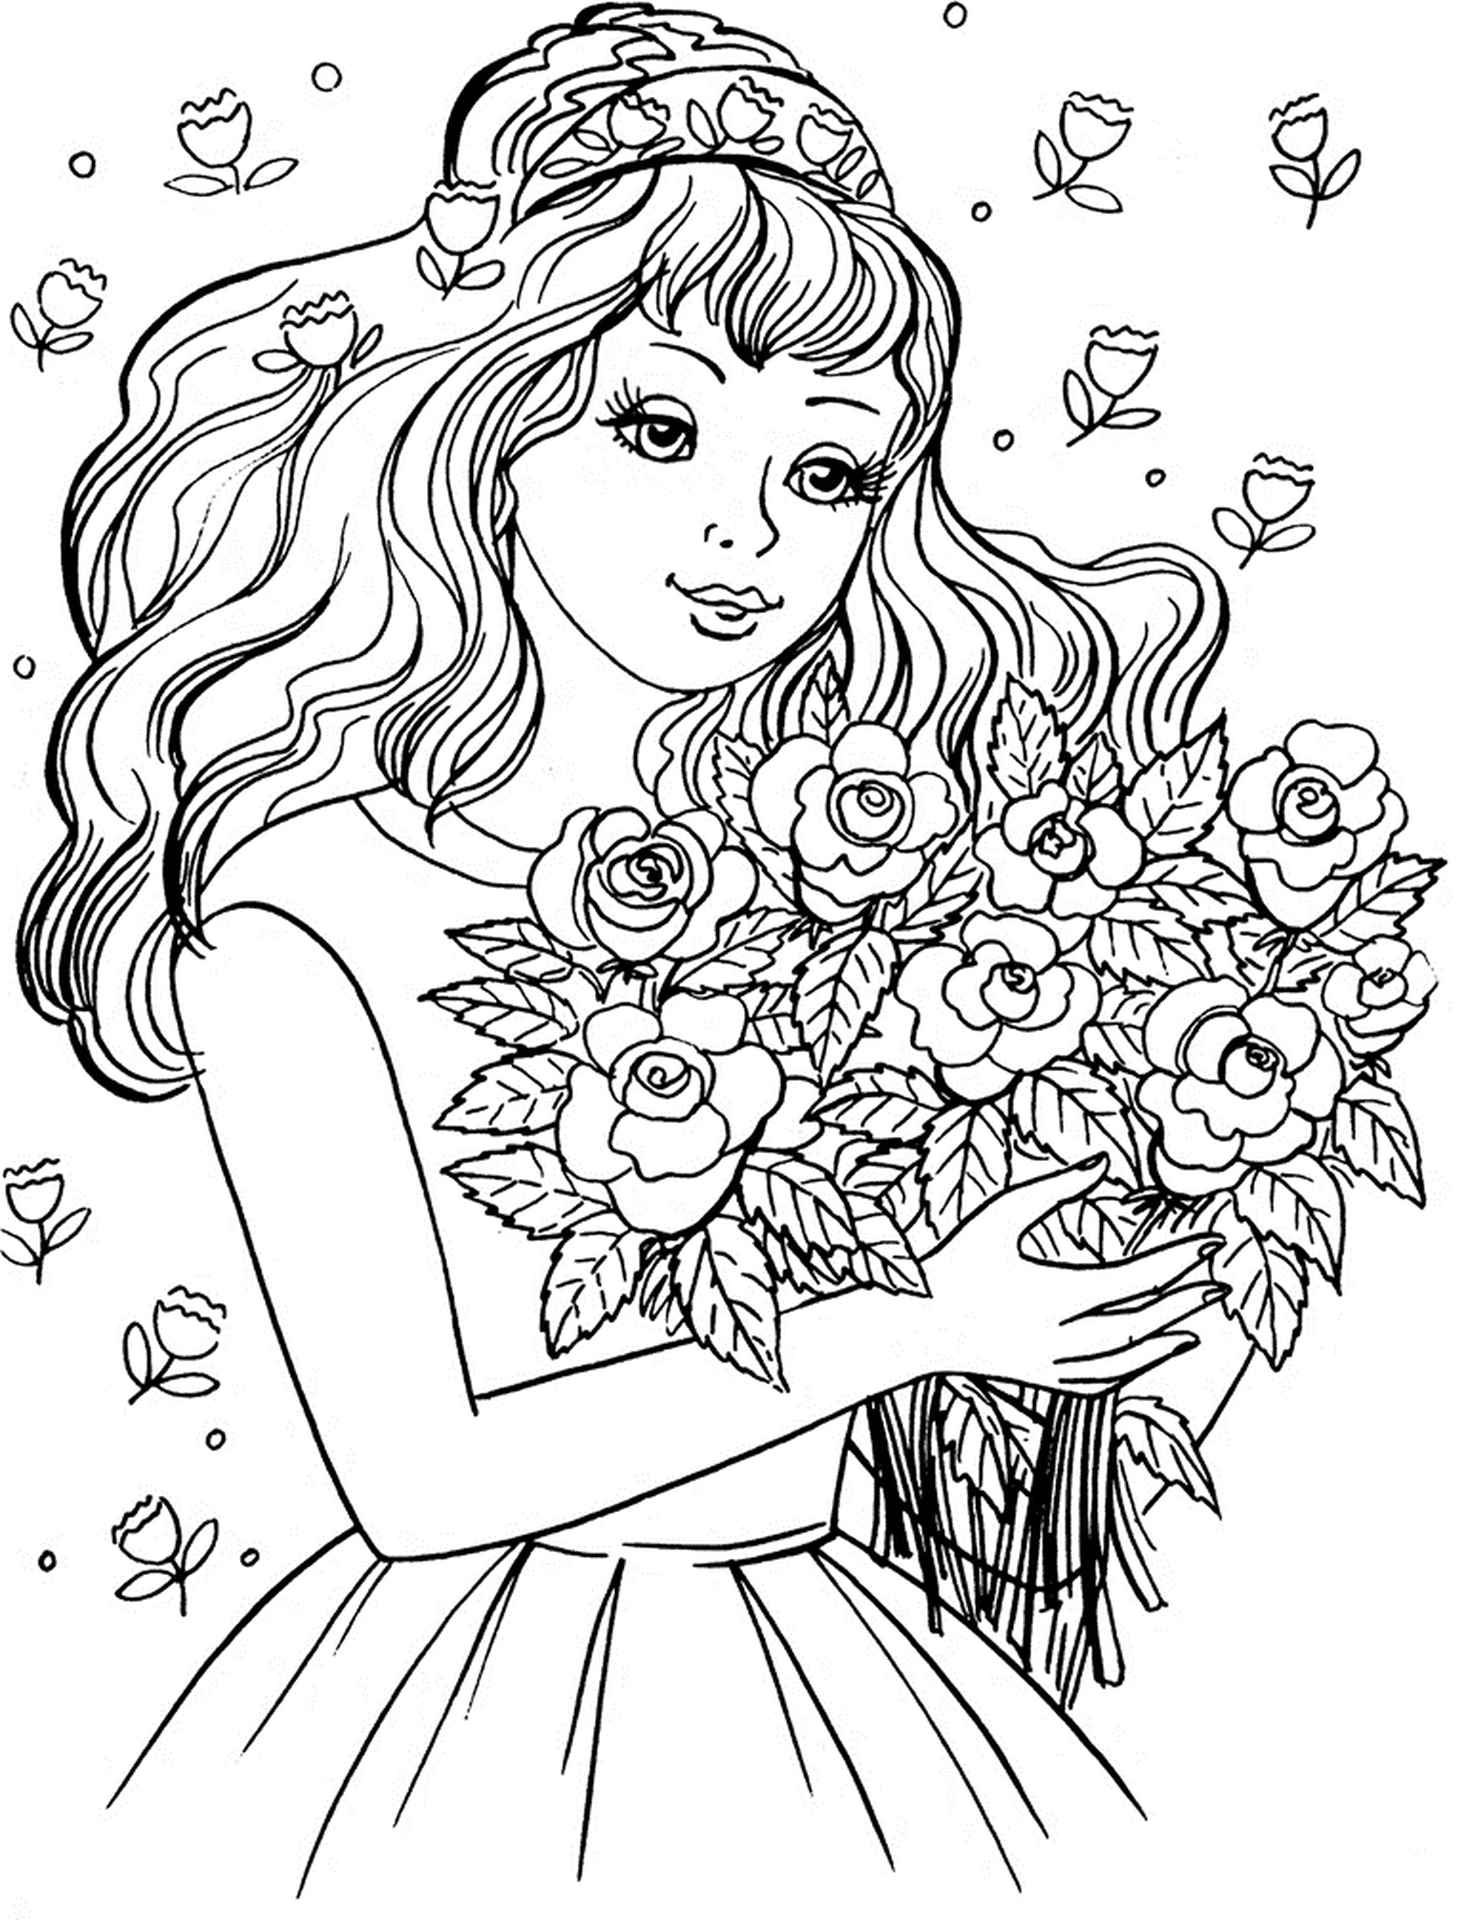 A Girl With Flowers Coloring Page